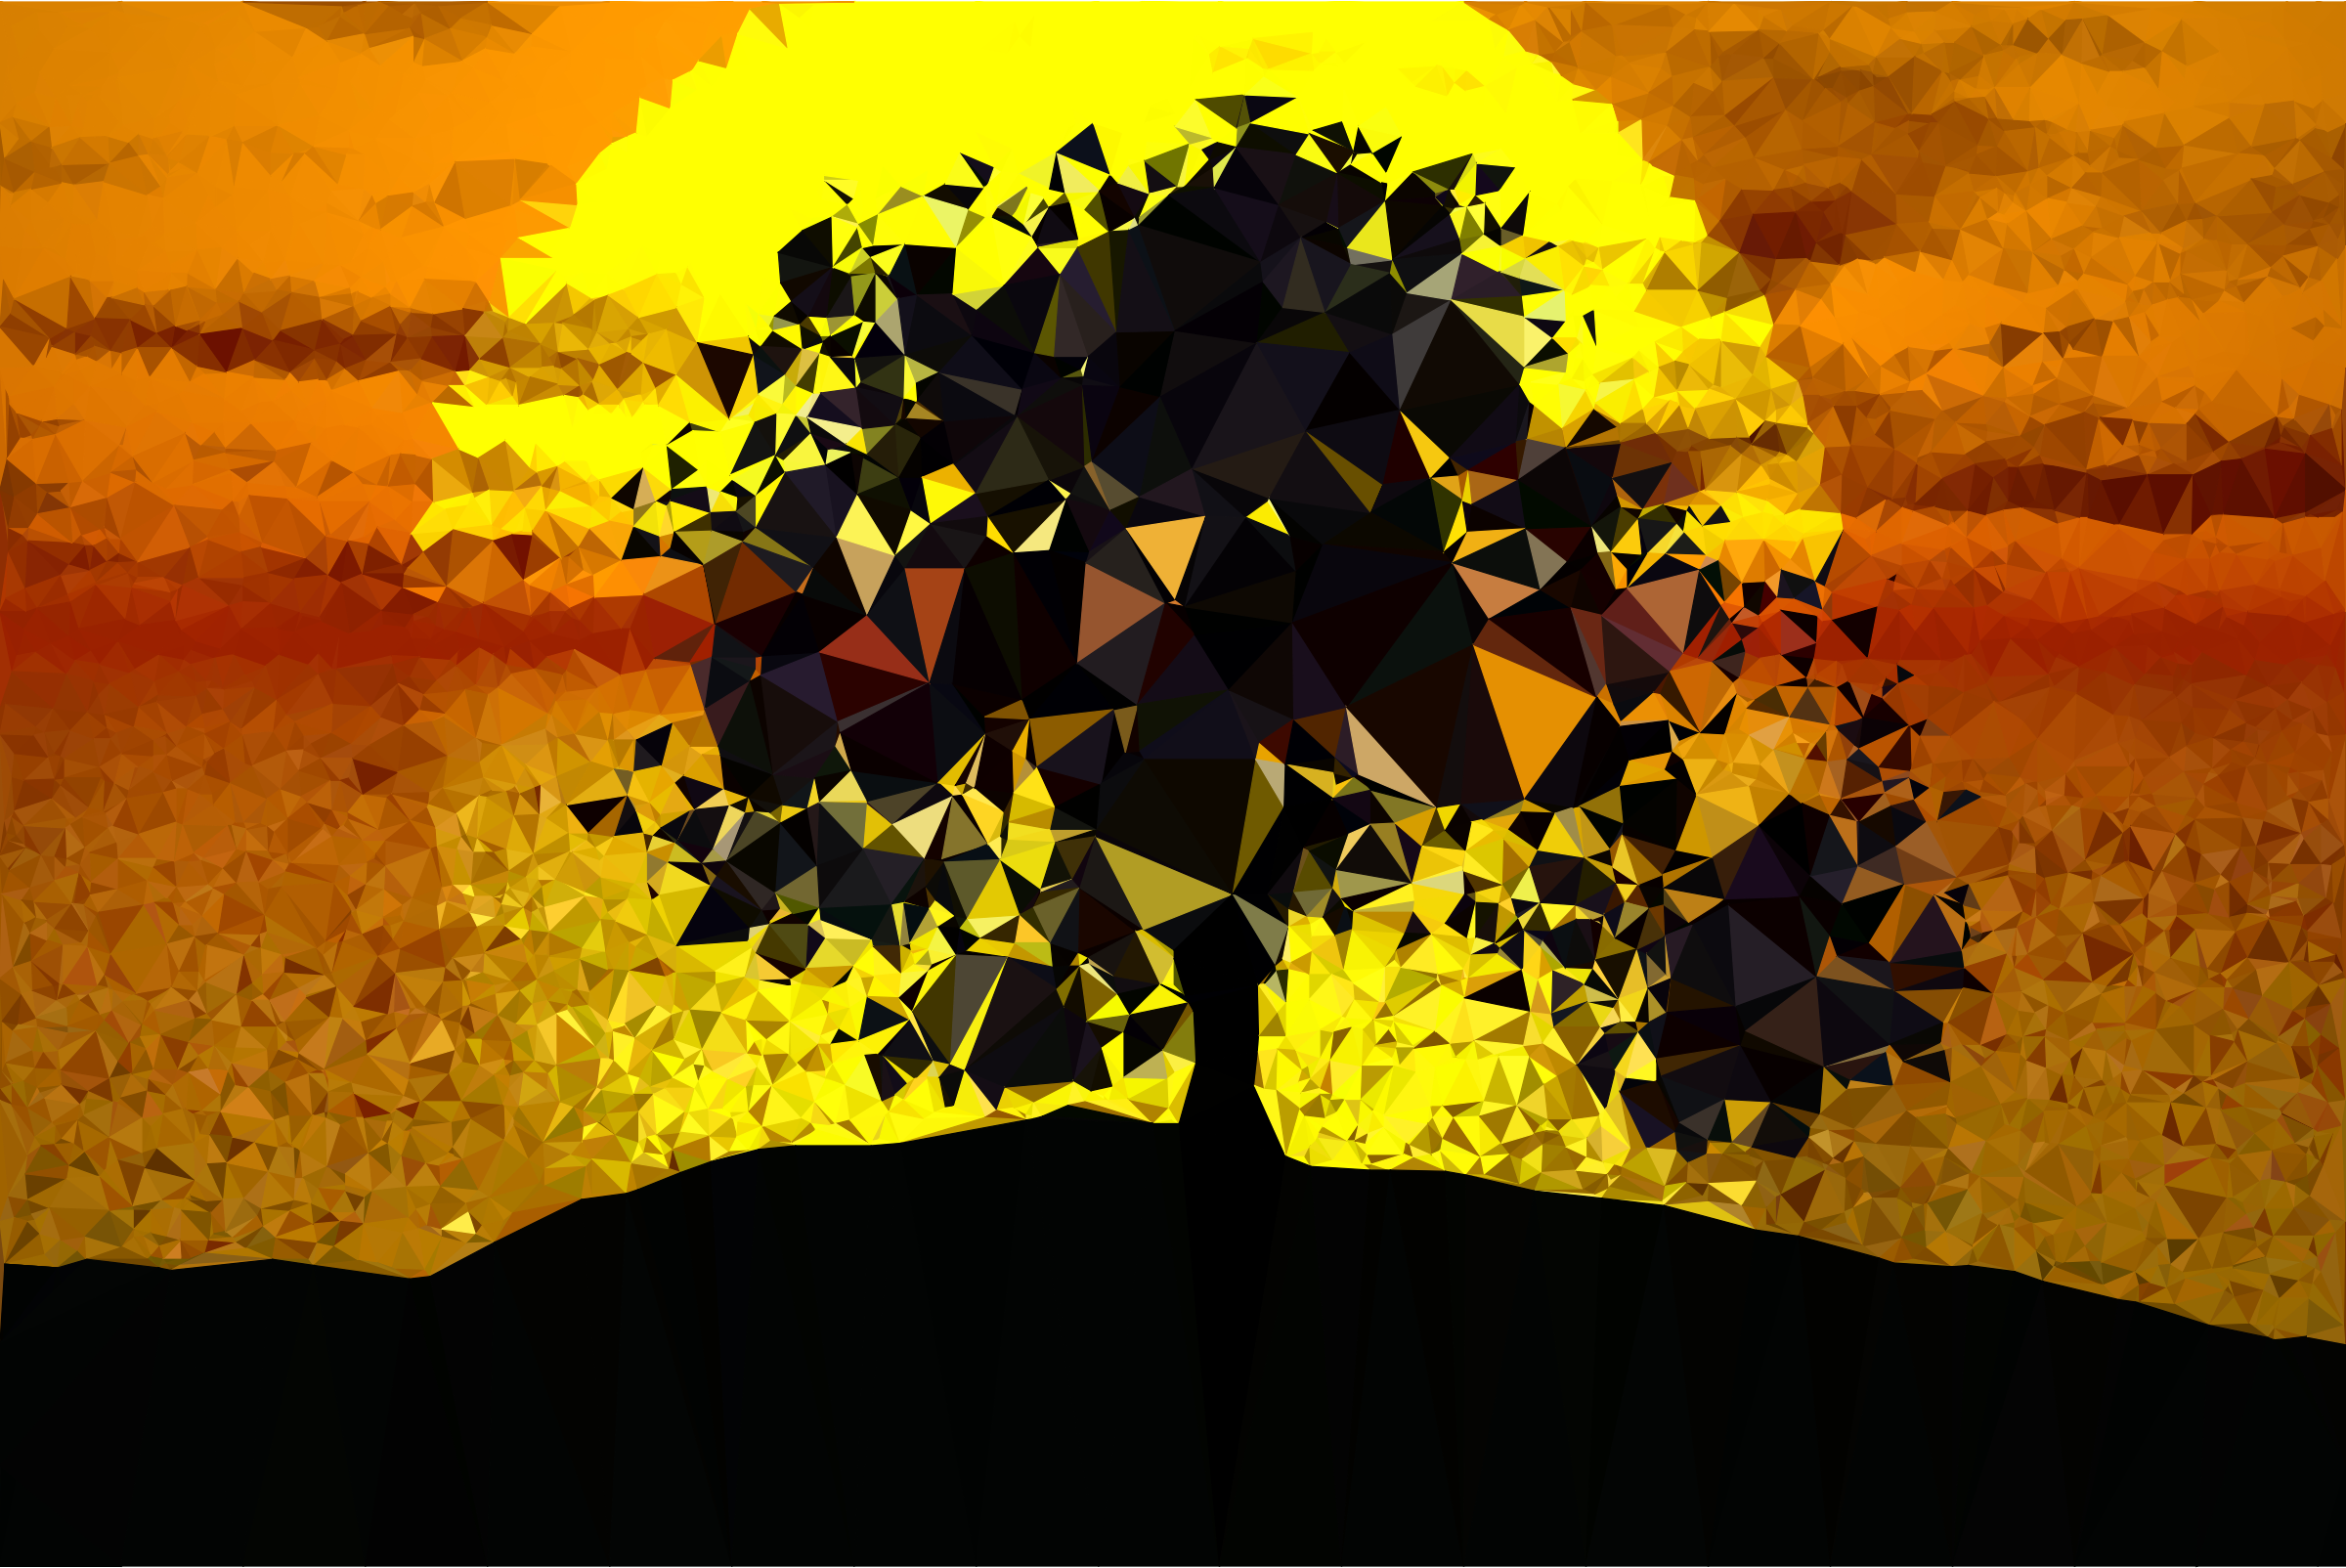 Low Poly Tree Silhouette Sunset by GDJ